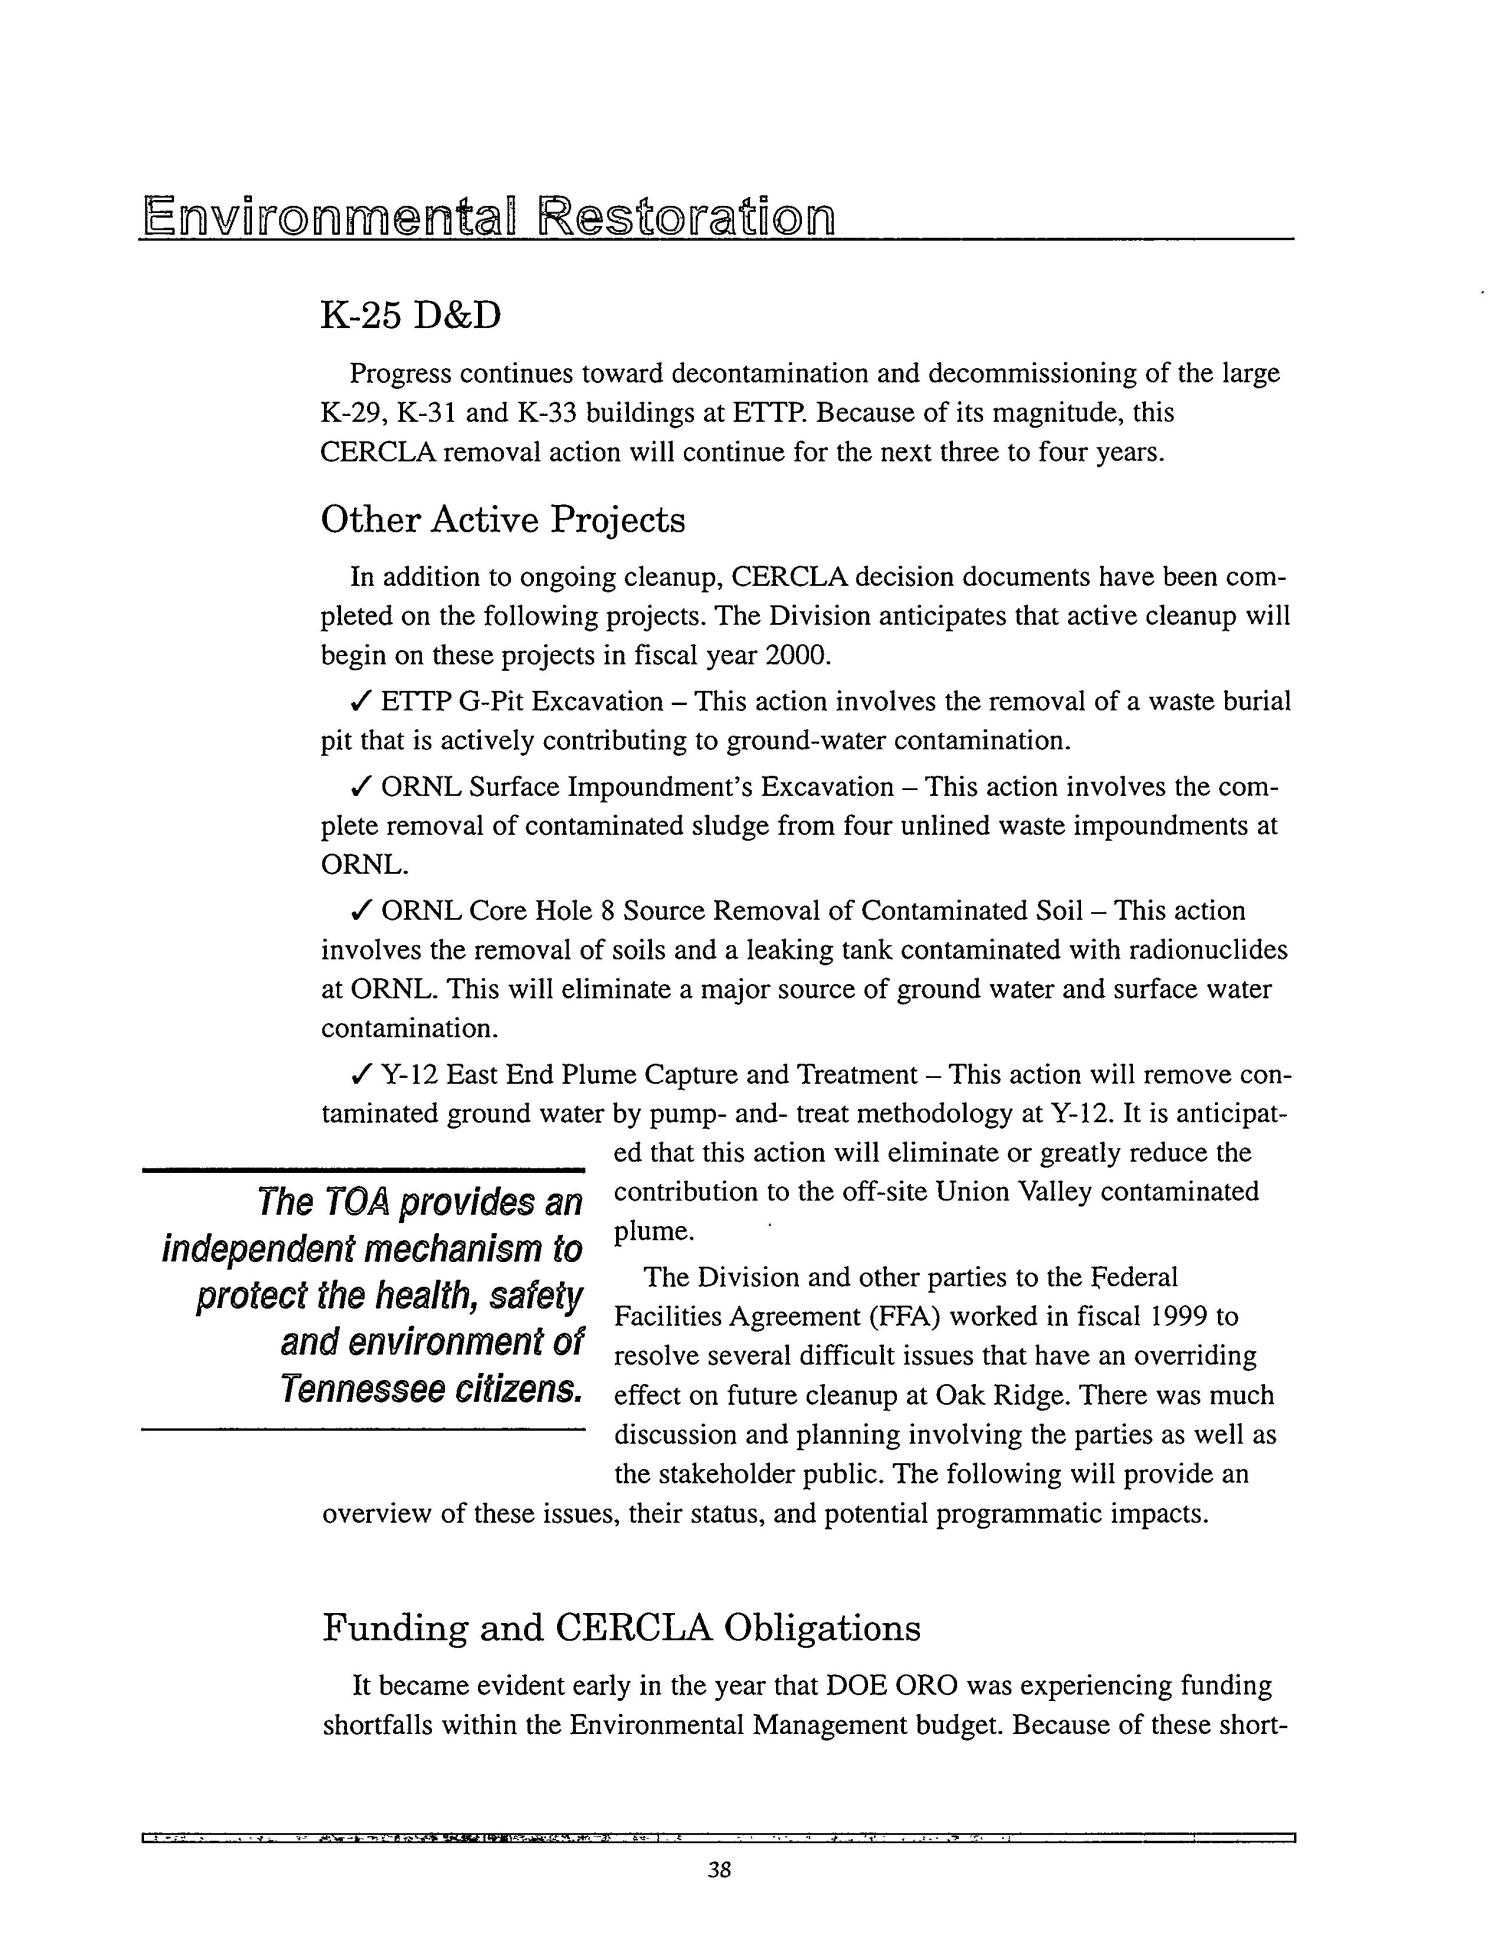 Tennessee Department of Environment and Conservation - DOE Oversight Division. Status Report to the Public - December 1999                                                                                                      [Sequence #]: 42 of 72